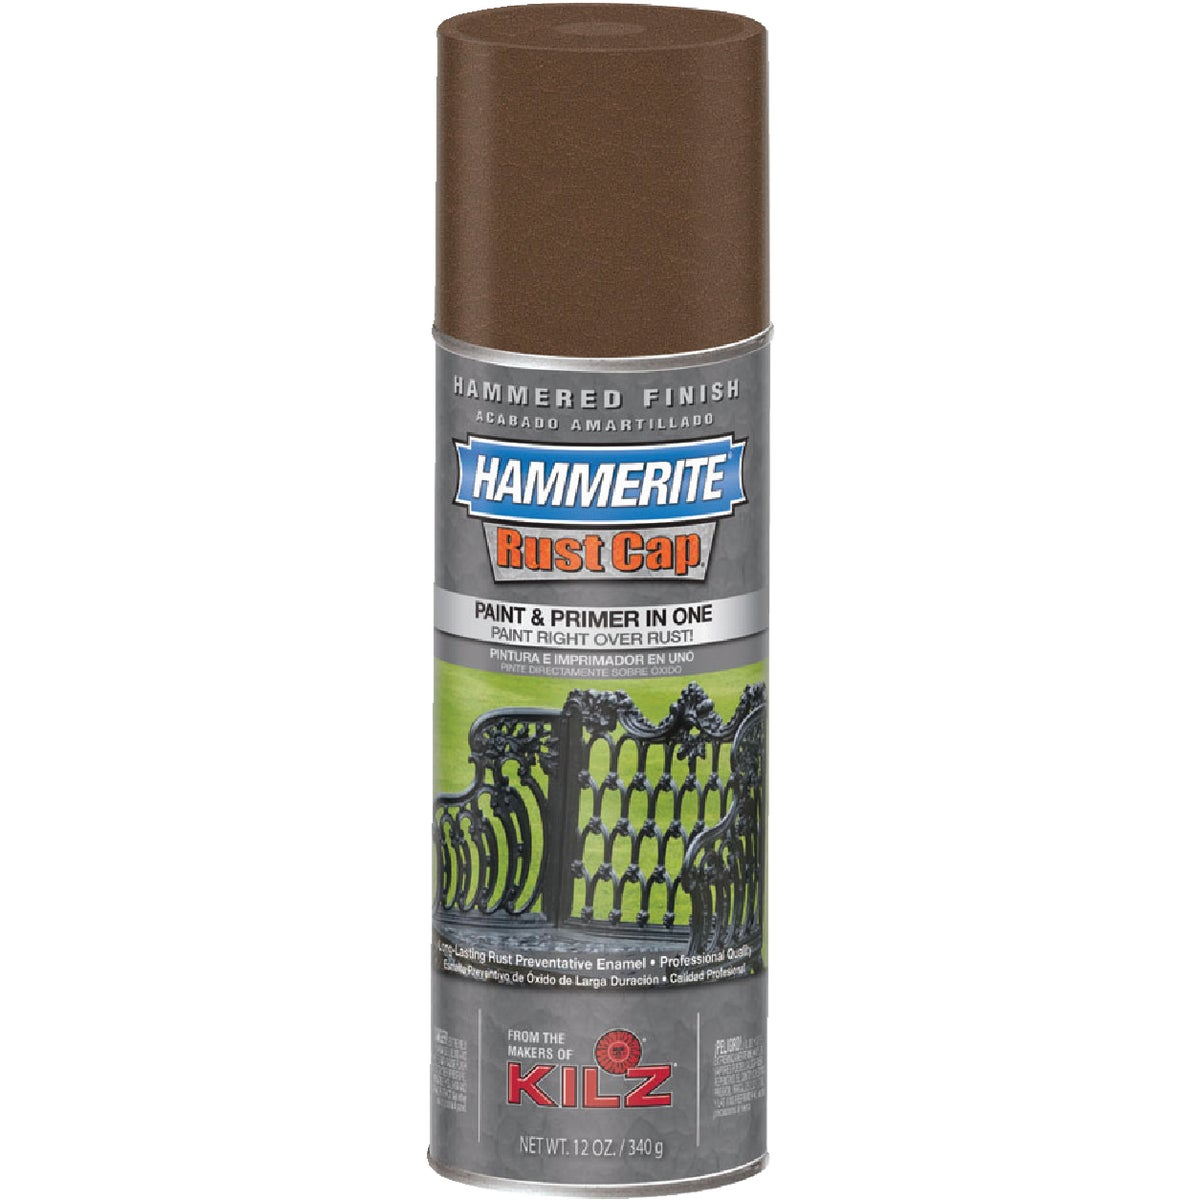 BROWN HAMMRD SPRAY PAINT - 41120 by Masterchem